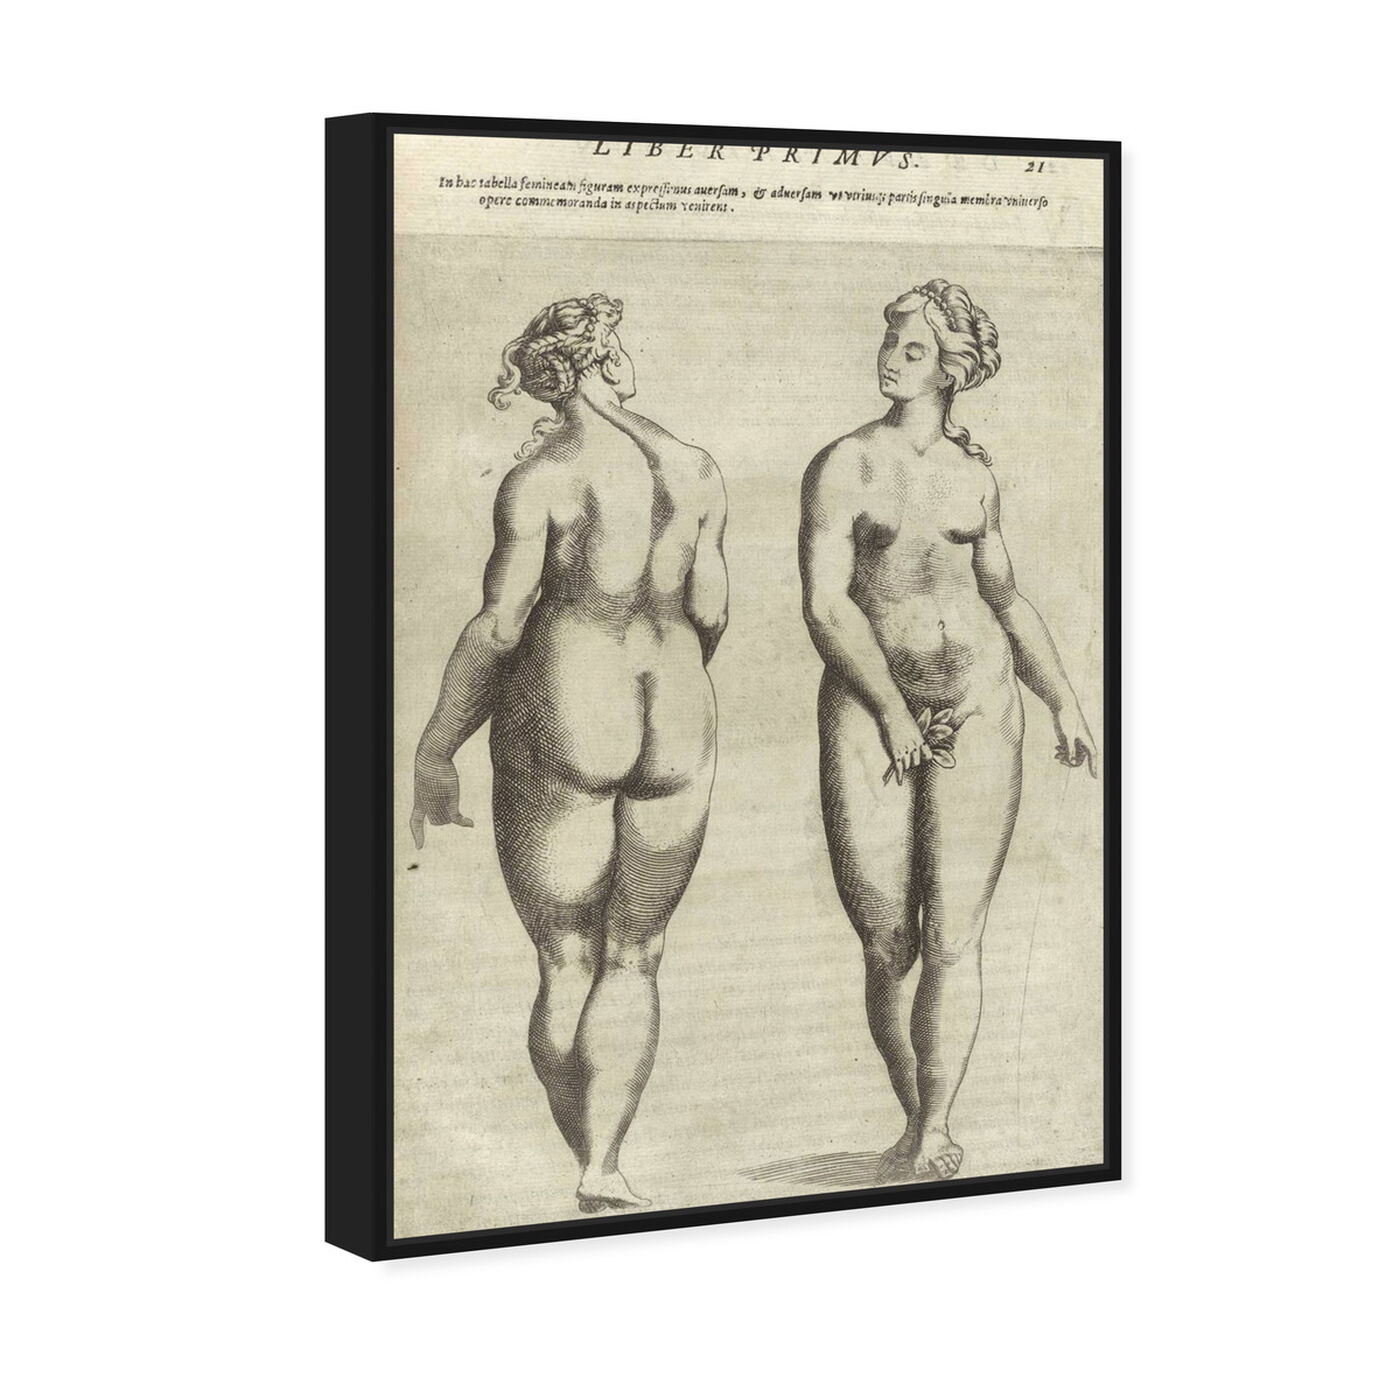 Angled view of Liber Primvs - The Art Cabinet featuring classic and figurative and nudes art.